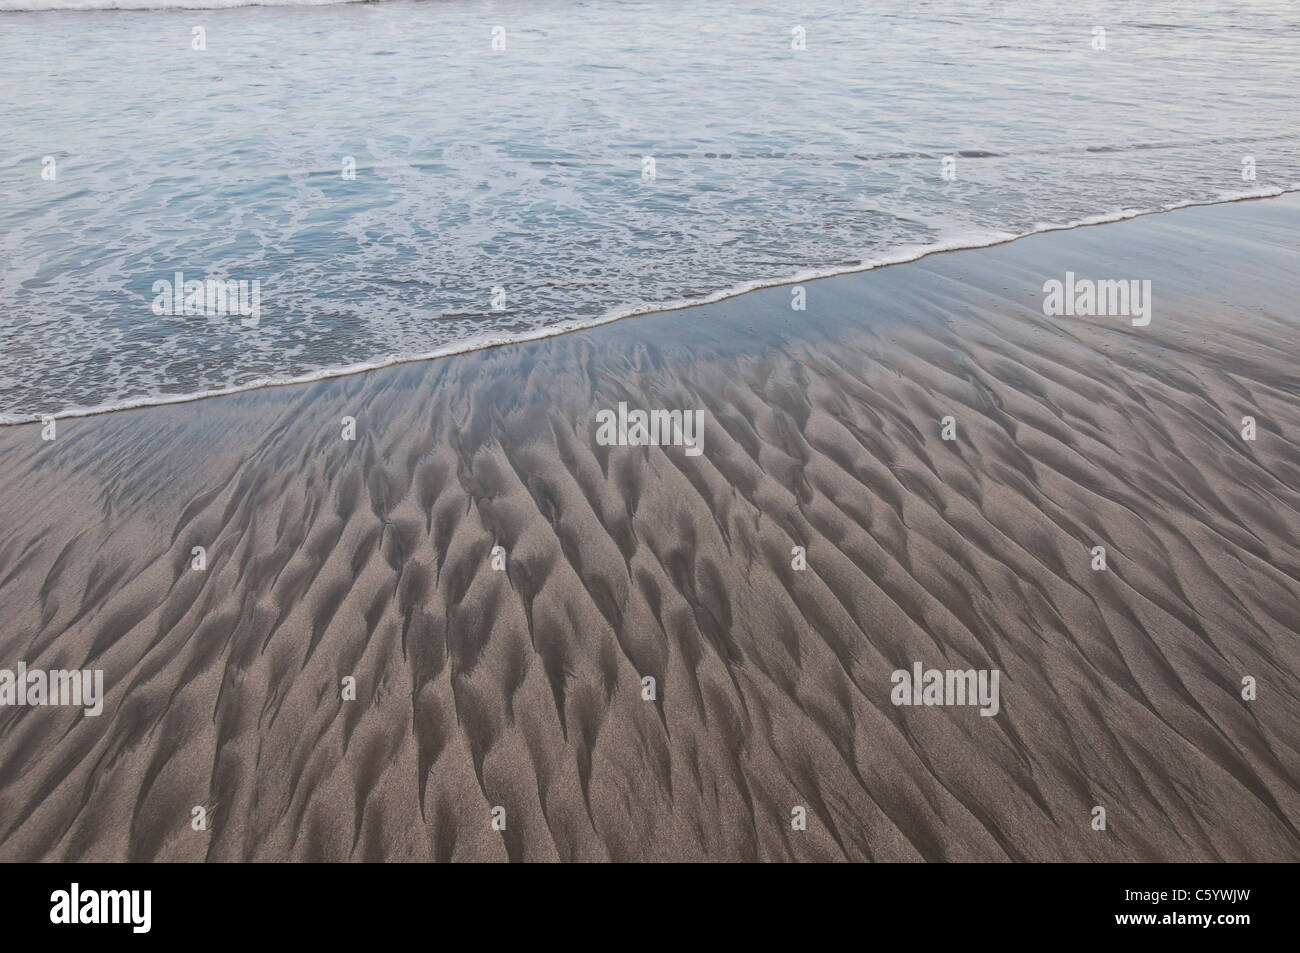 Patterns on the beach - Stock Image